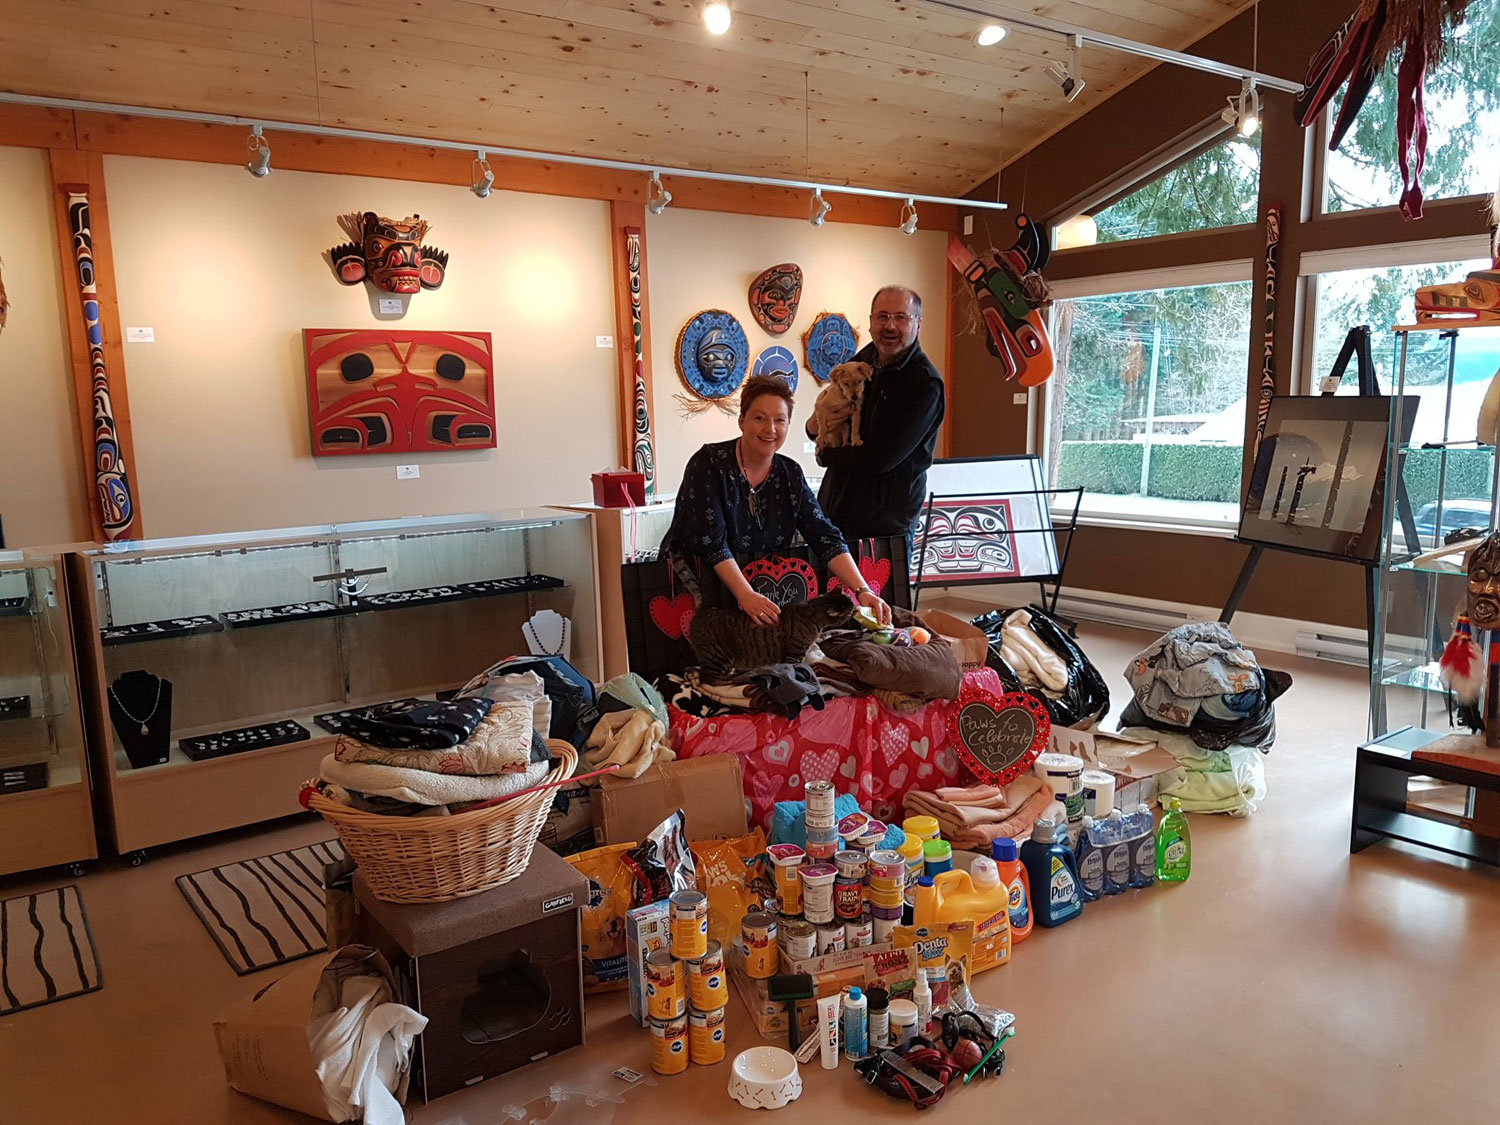 Material Donations Drive for the Comox Valley SPCA